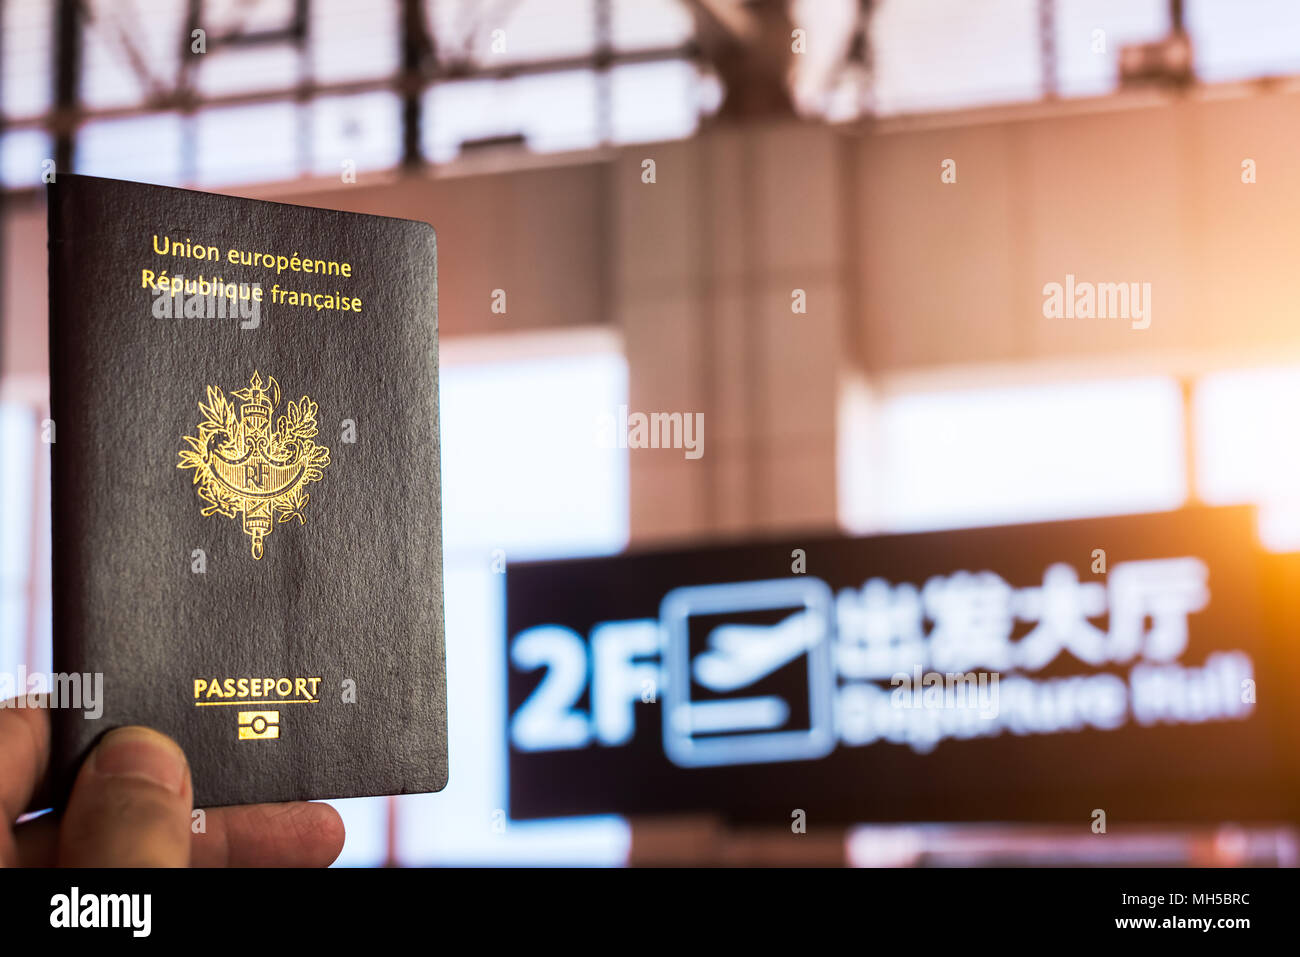 Hand holding a french passport in a chinese airport departure hall with the sun passing through the windows - Stock Image